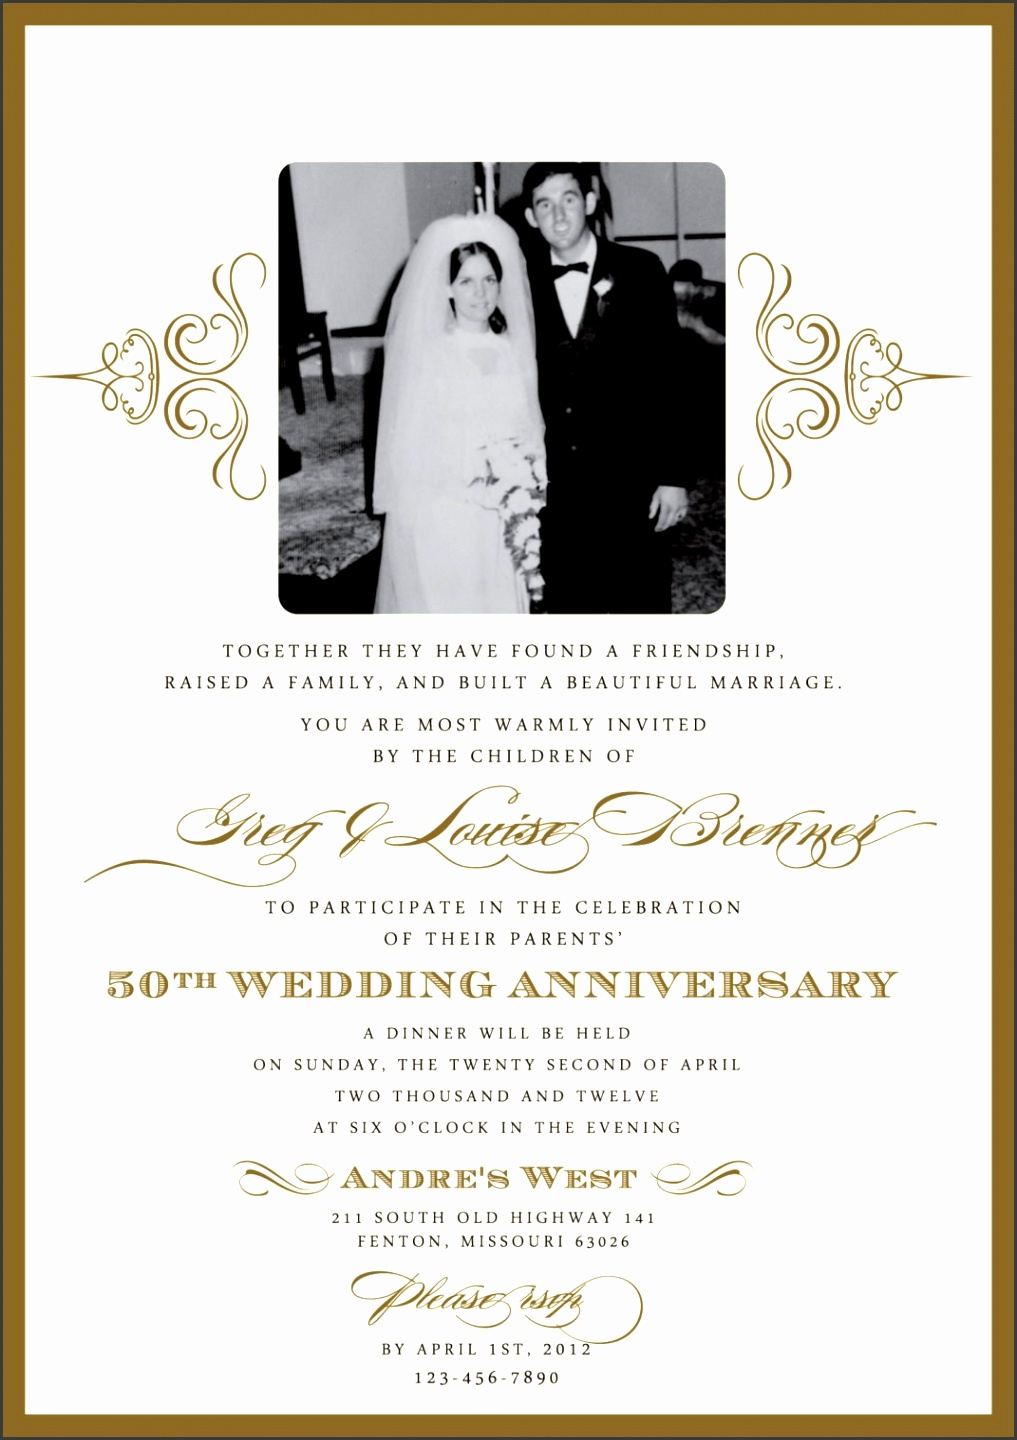 Anniversary Invitation Templates Free Printable SampleTemplatess - Wedding invitation templates: wedding anniversary invitation templates